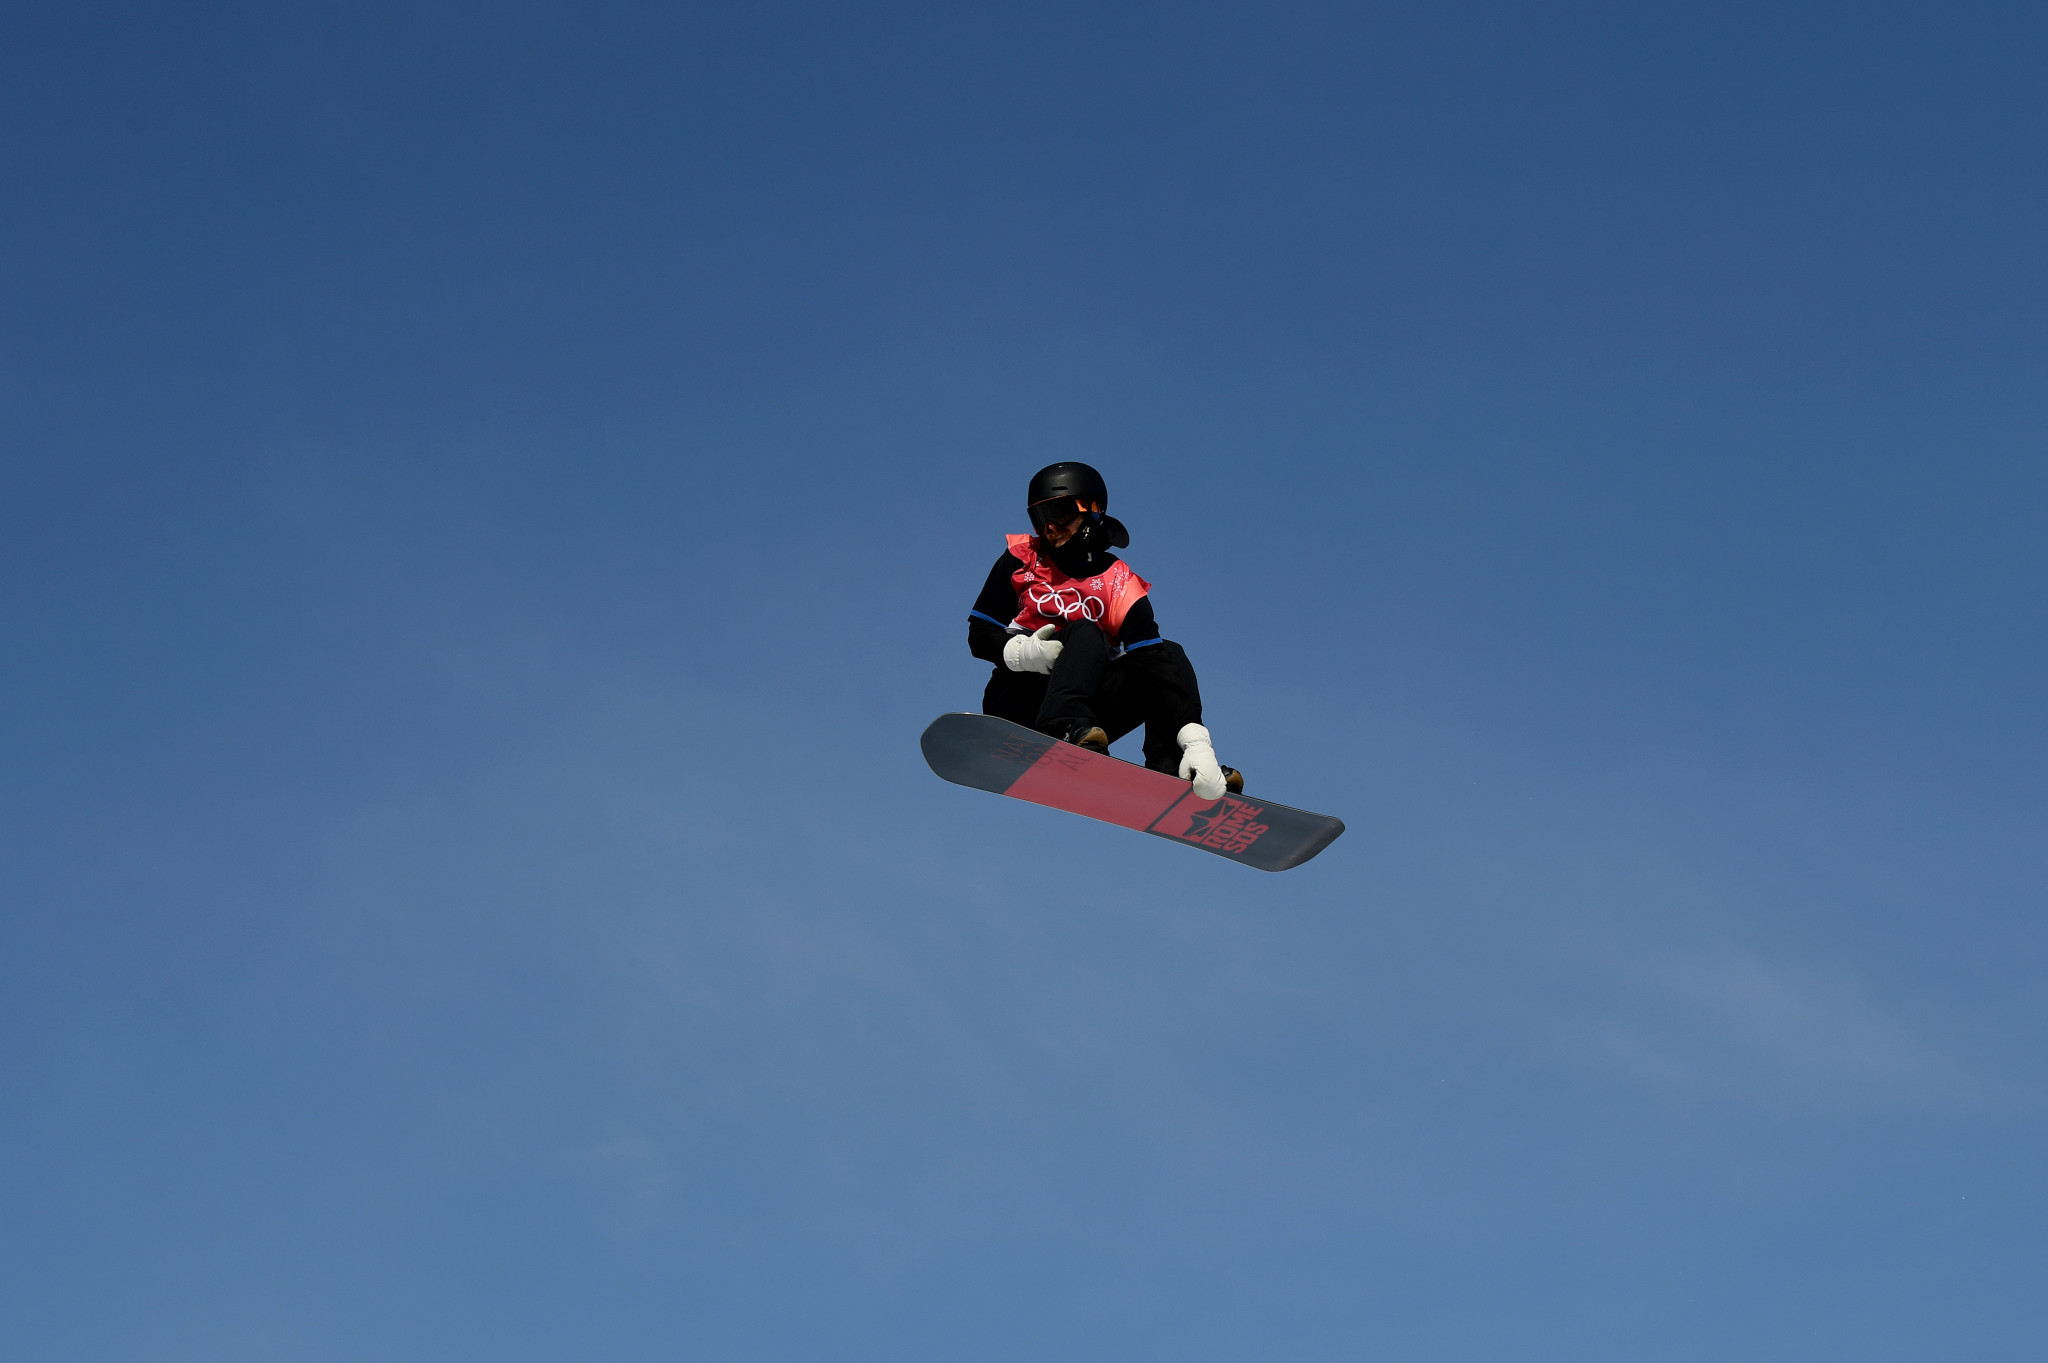 Sweden's Niklas Mattsson was the best performer in qualification for the men's snowboard event ©Getty Images